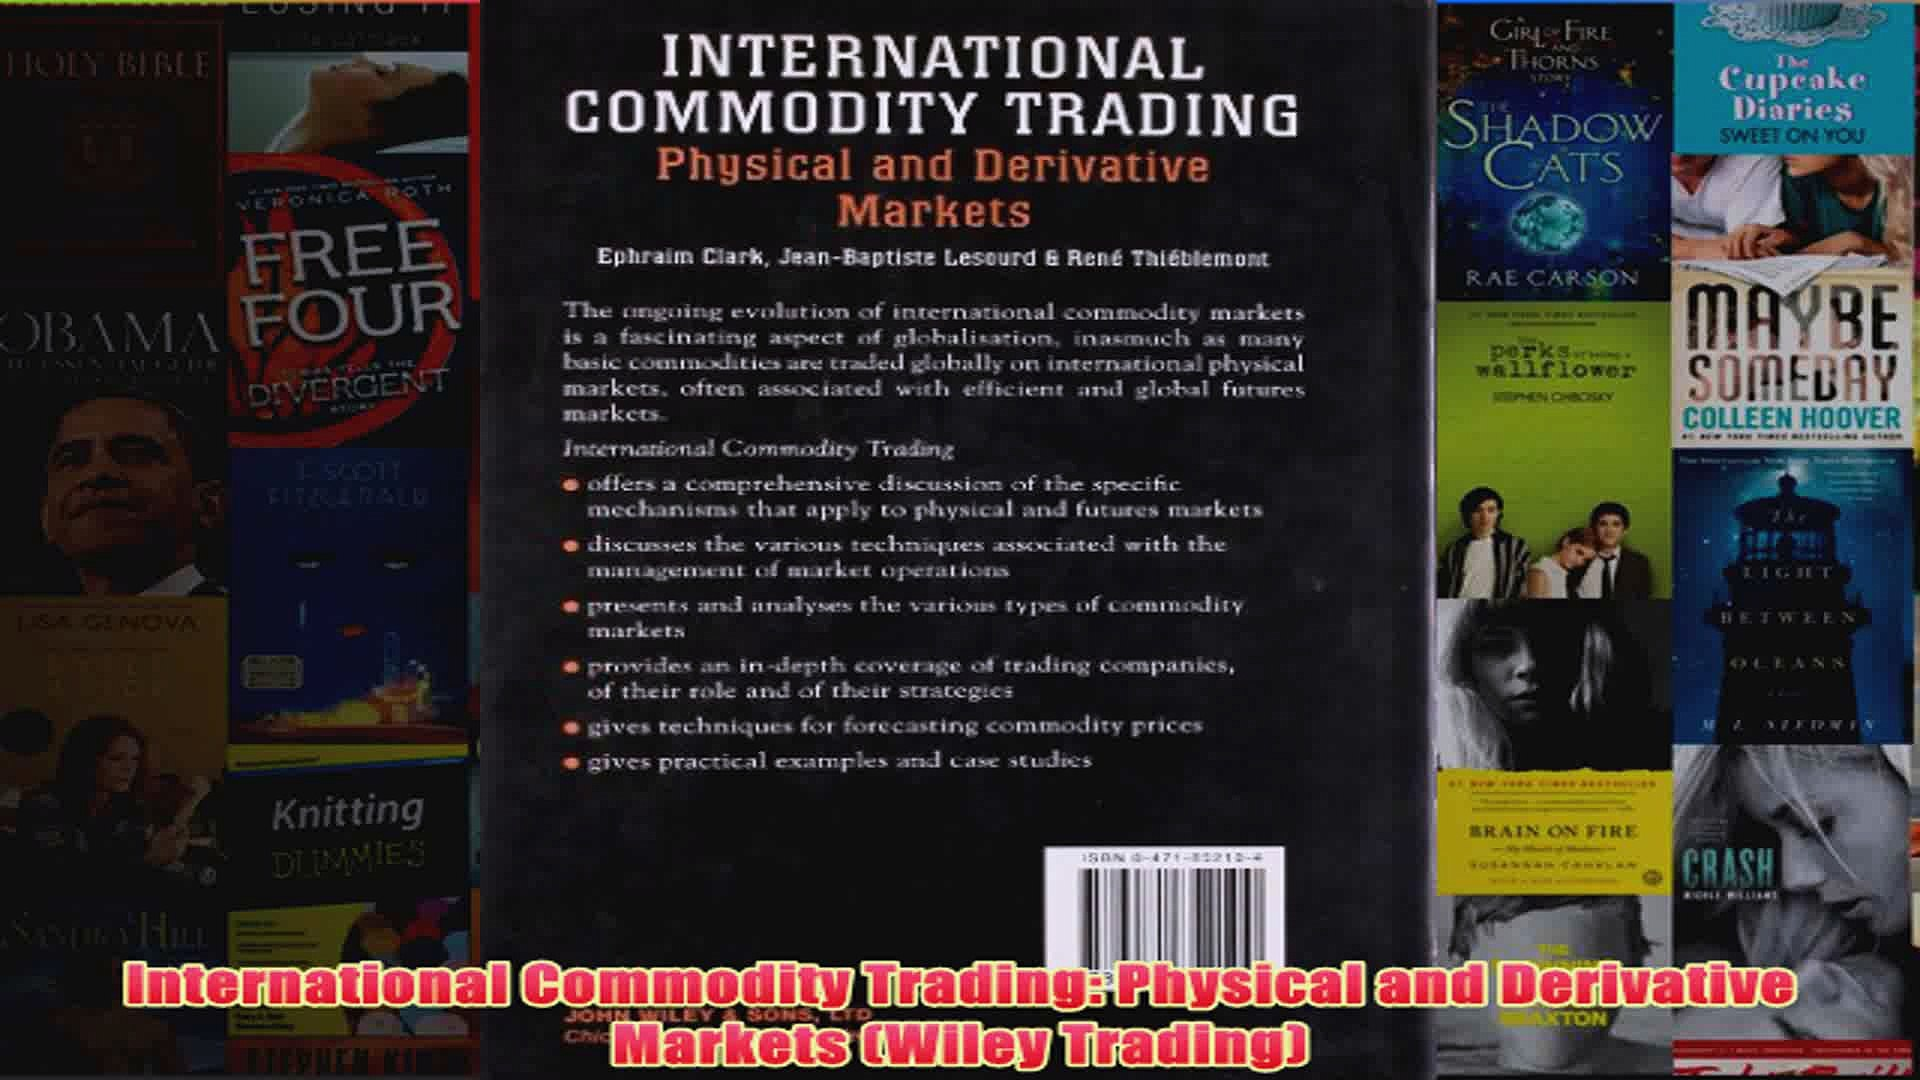 Physical and Derivative Markets International Commodity Trading